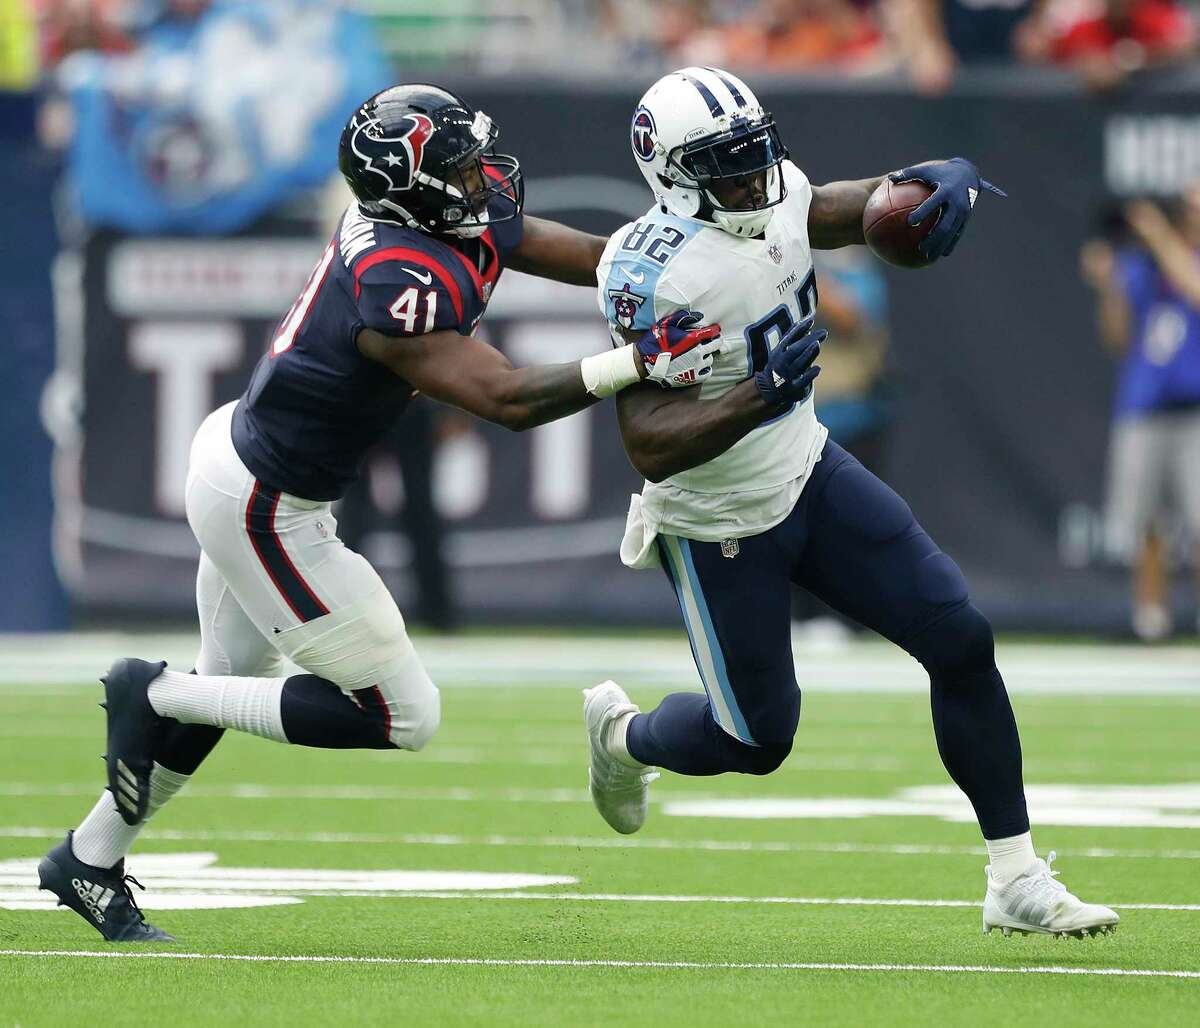 Tennessee Titans tight end Delanie Walker (82) runs the ball against Houston Texans inside linebacker Zach Cunningham (41) during the second quarter of an NFL football game at NRG Stadium, Sunday, Oct. 1, 2017, in Houston.